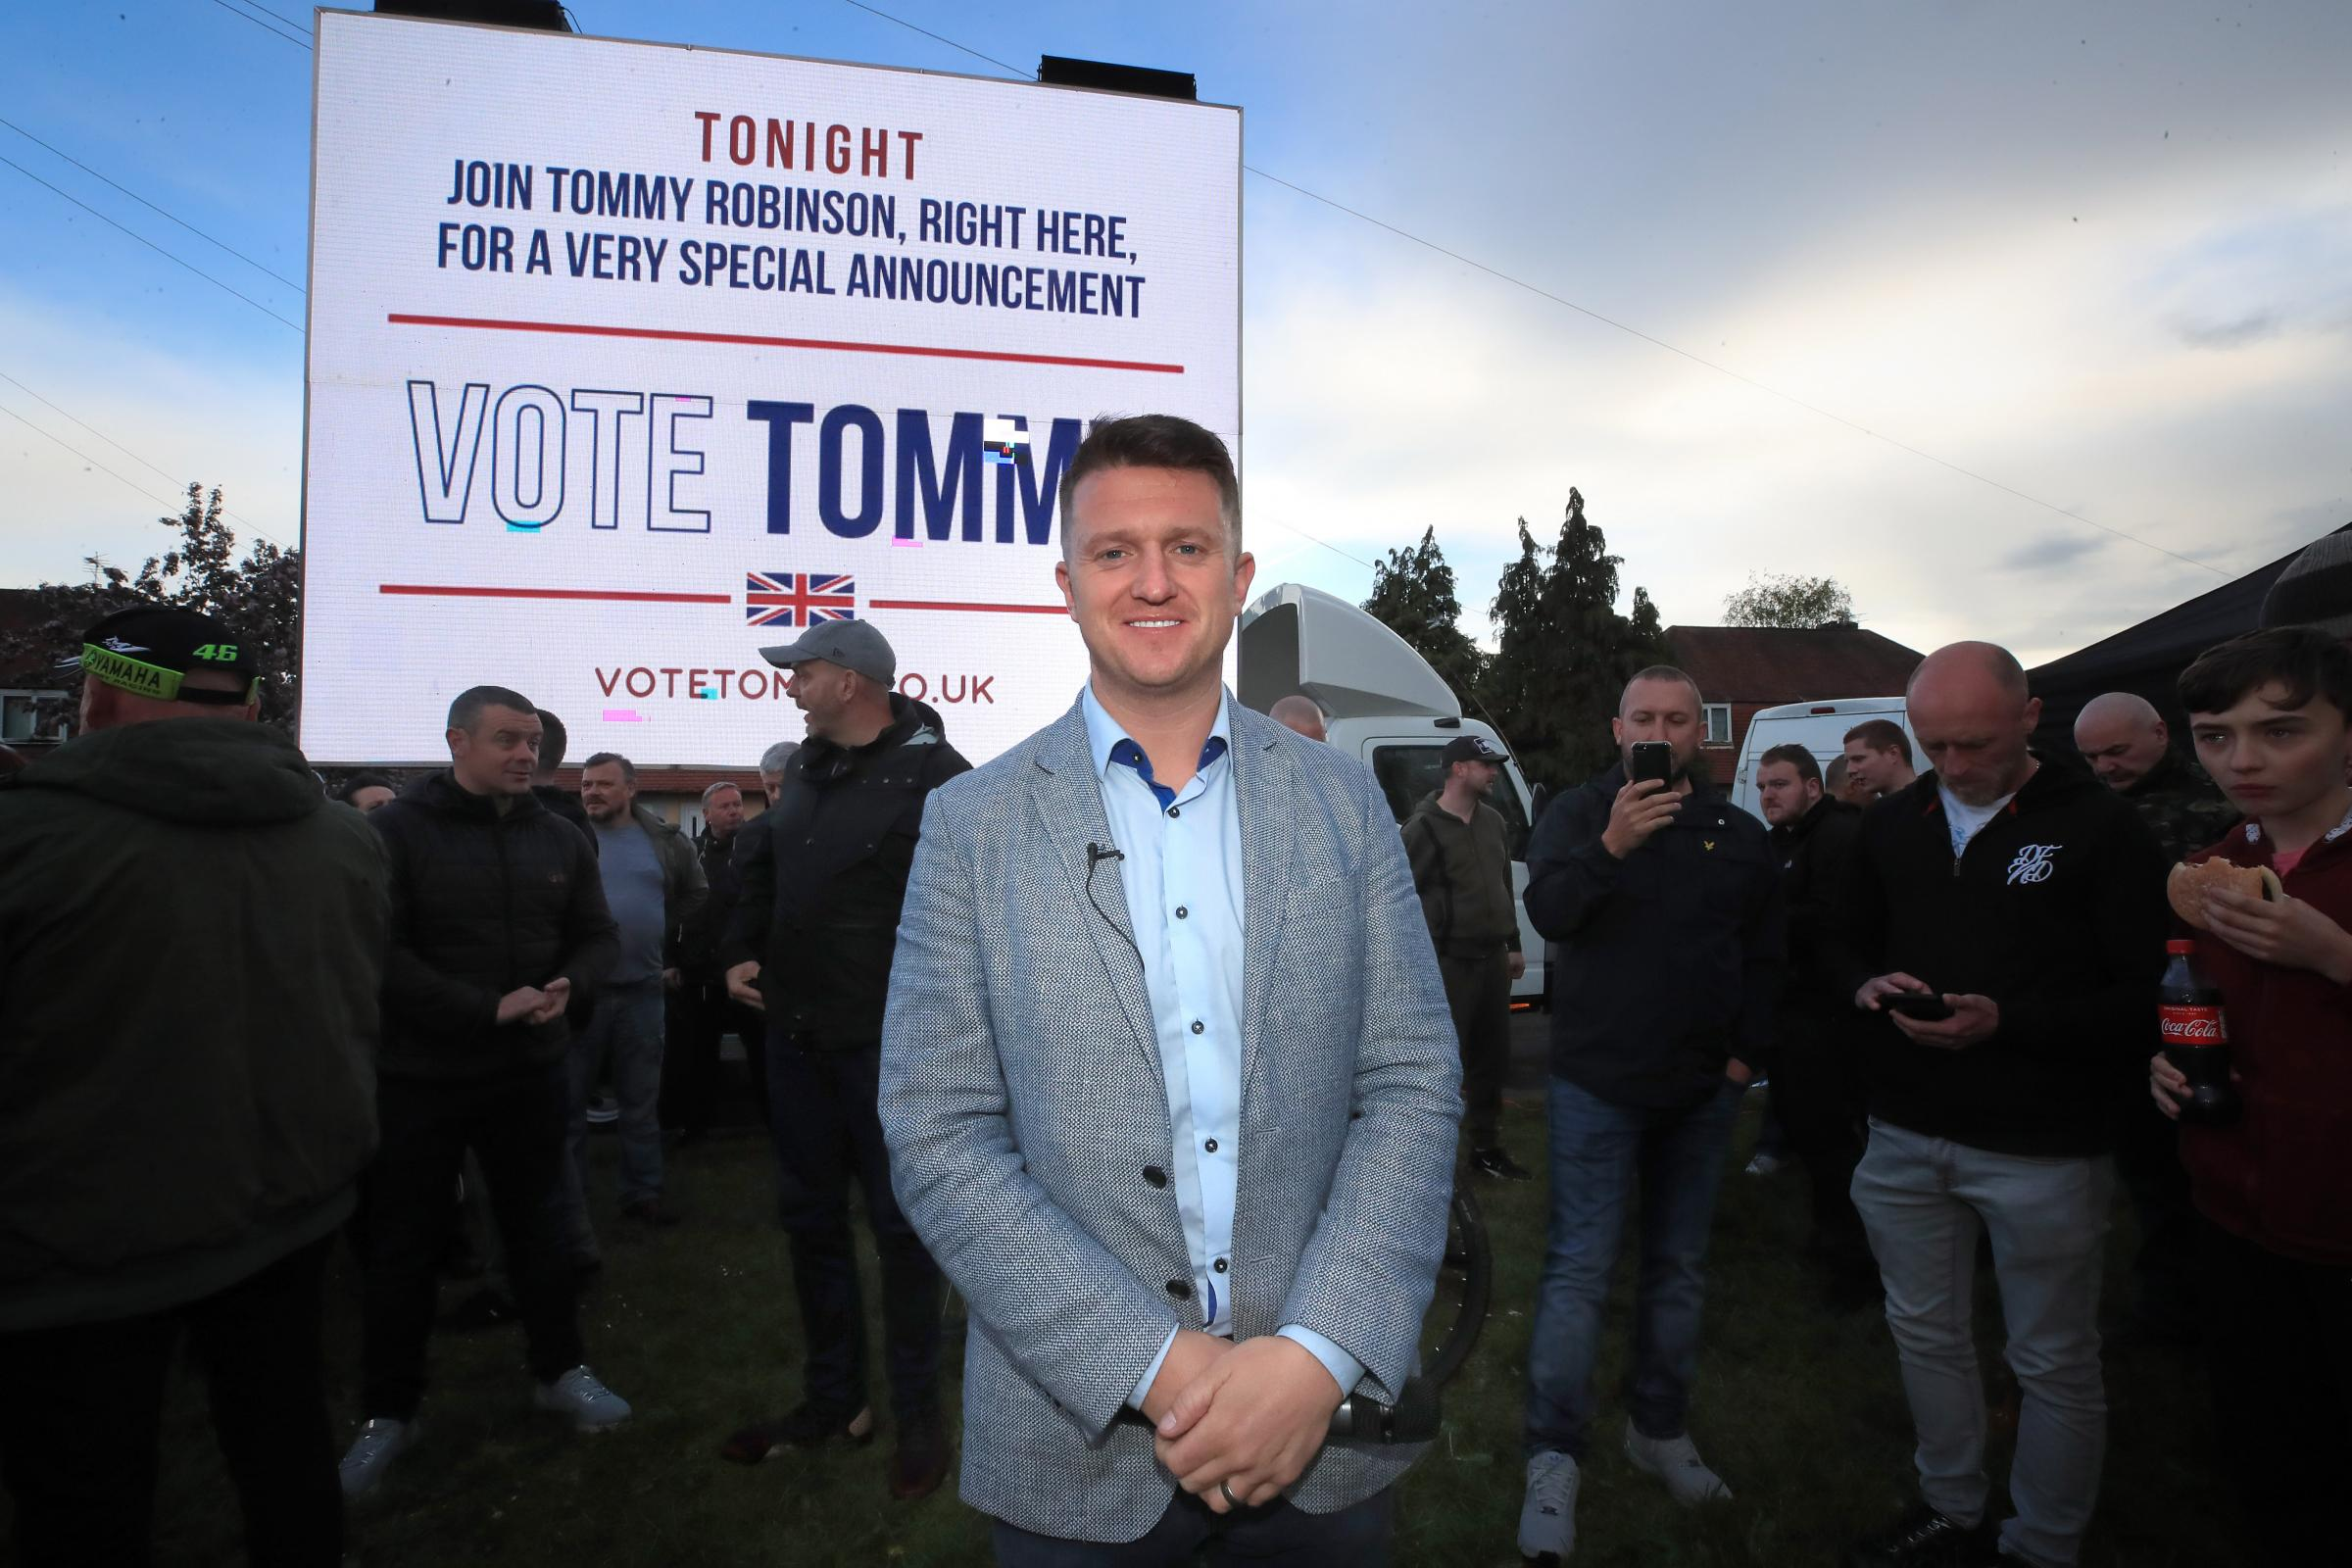 EUROPE: Former English Defence League leader Tommy Robinson at a rally in Manchester